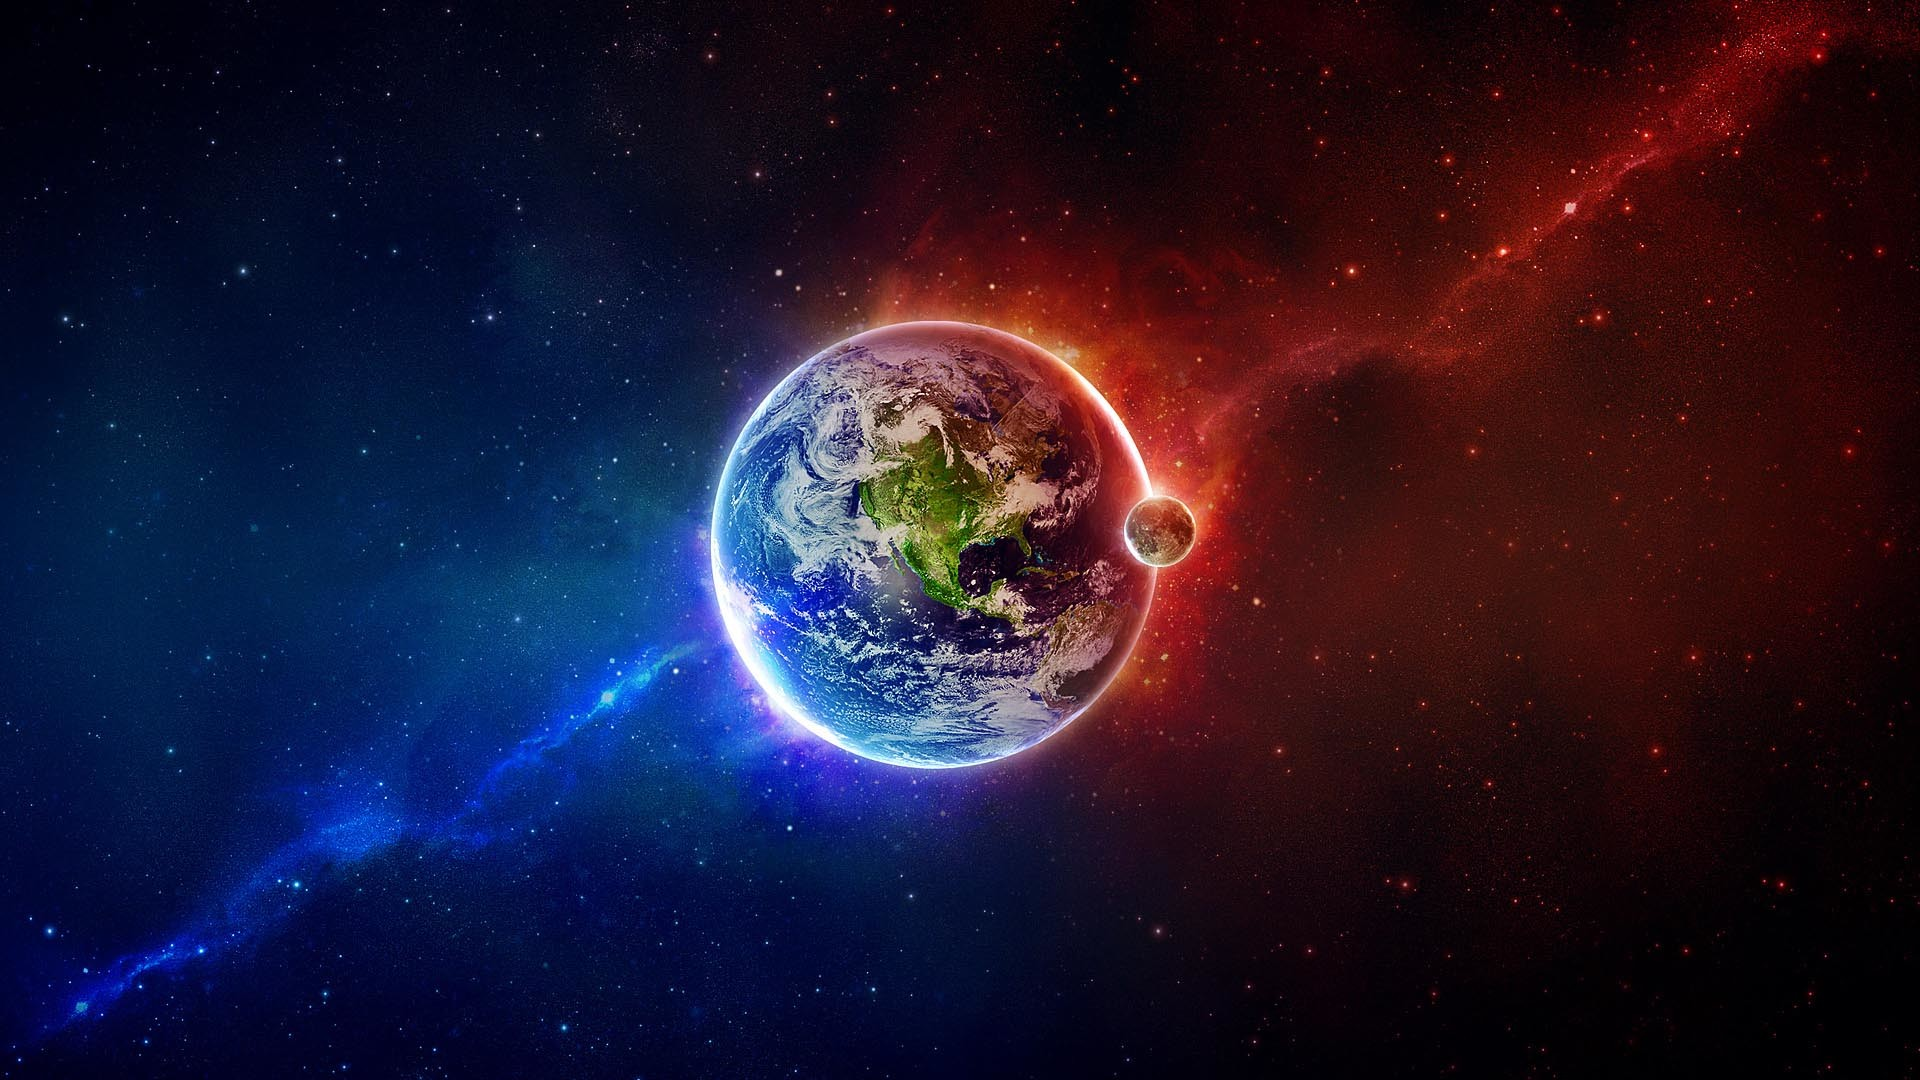 blue with red | Outer Space Earth Moon Red Blue HD Wallpaper